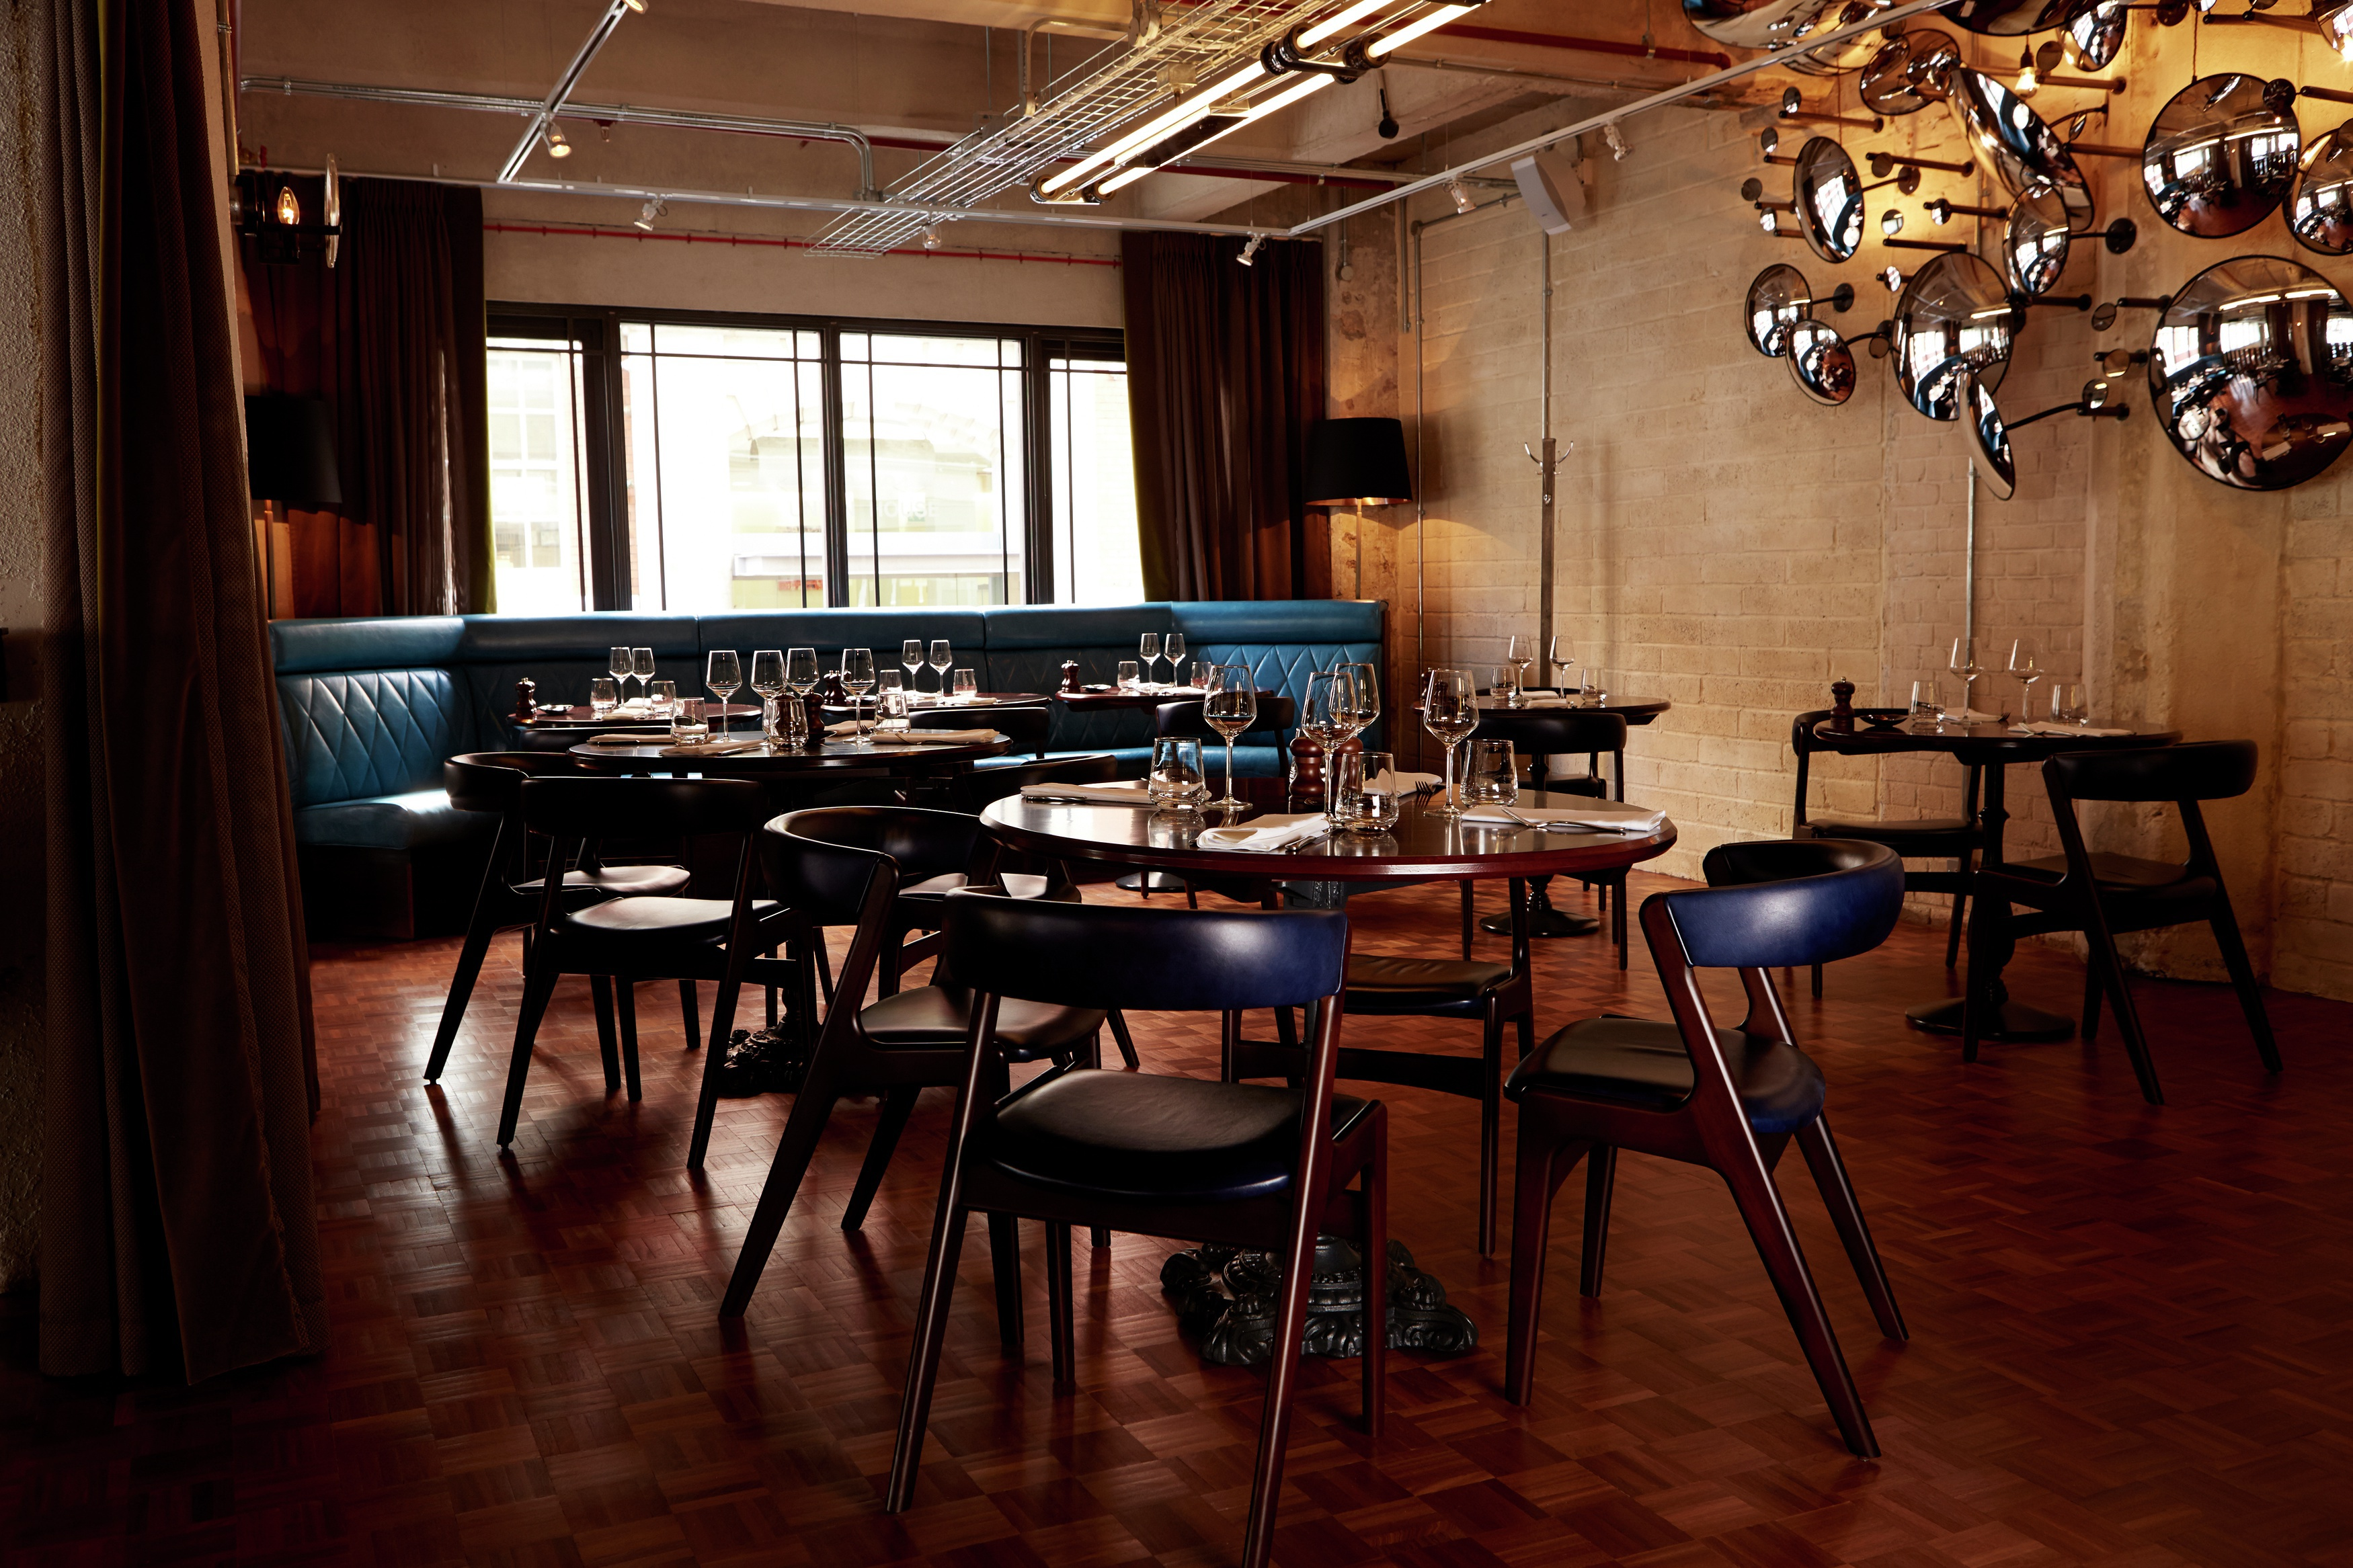 upstairs are private dining rooms that can host between two and 120  people  Quite the gathering  Expect classic British food done really well  and an. Best restaurants for birthday dinners in London   Best restaurants